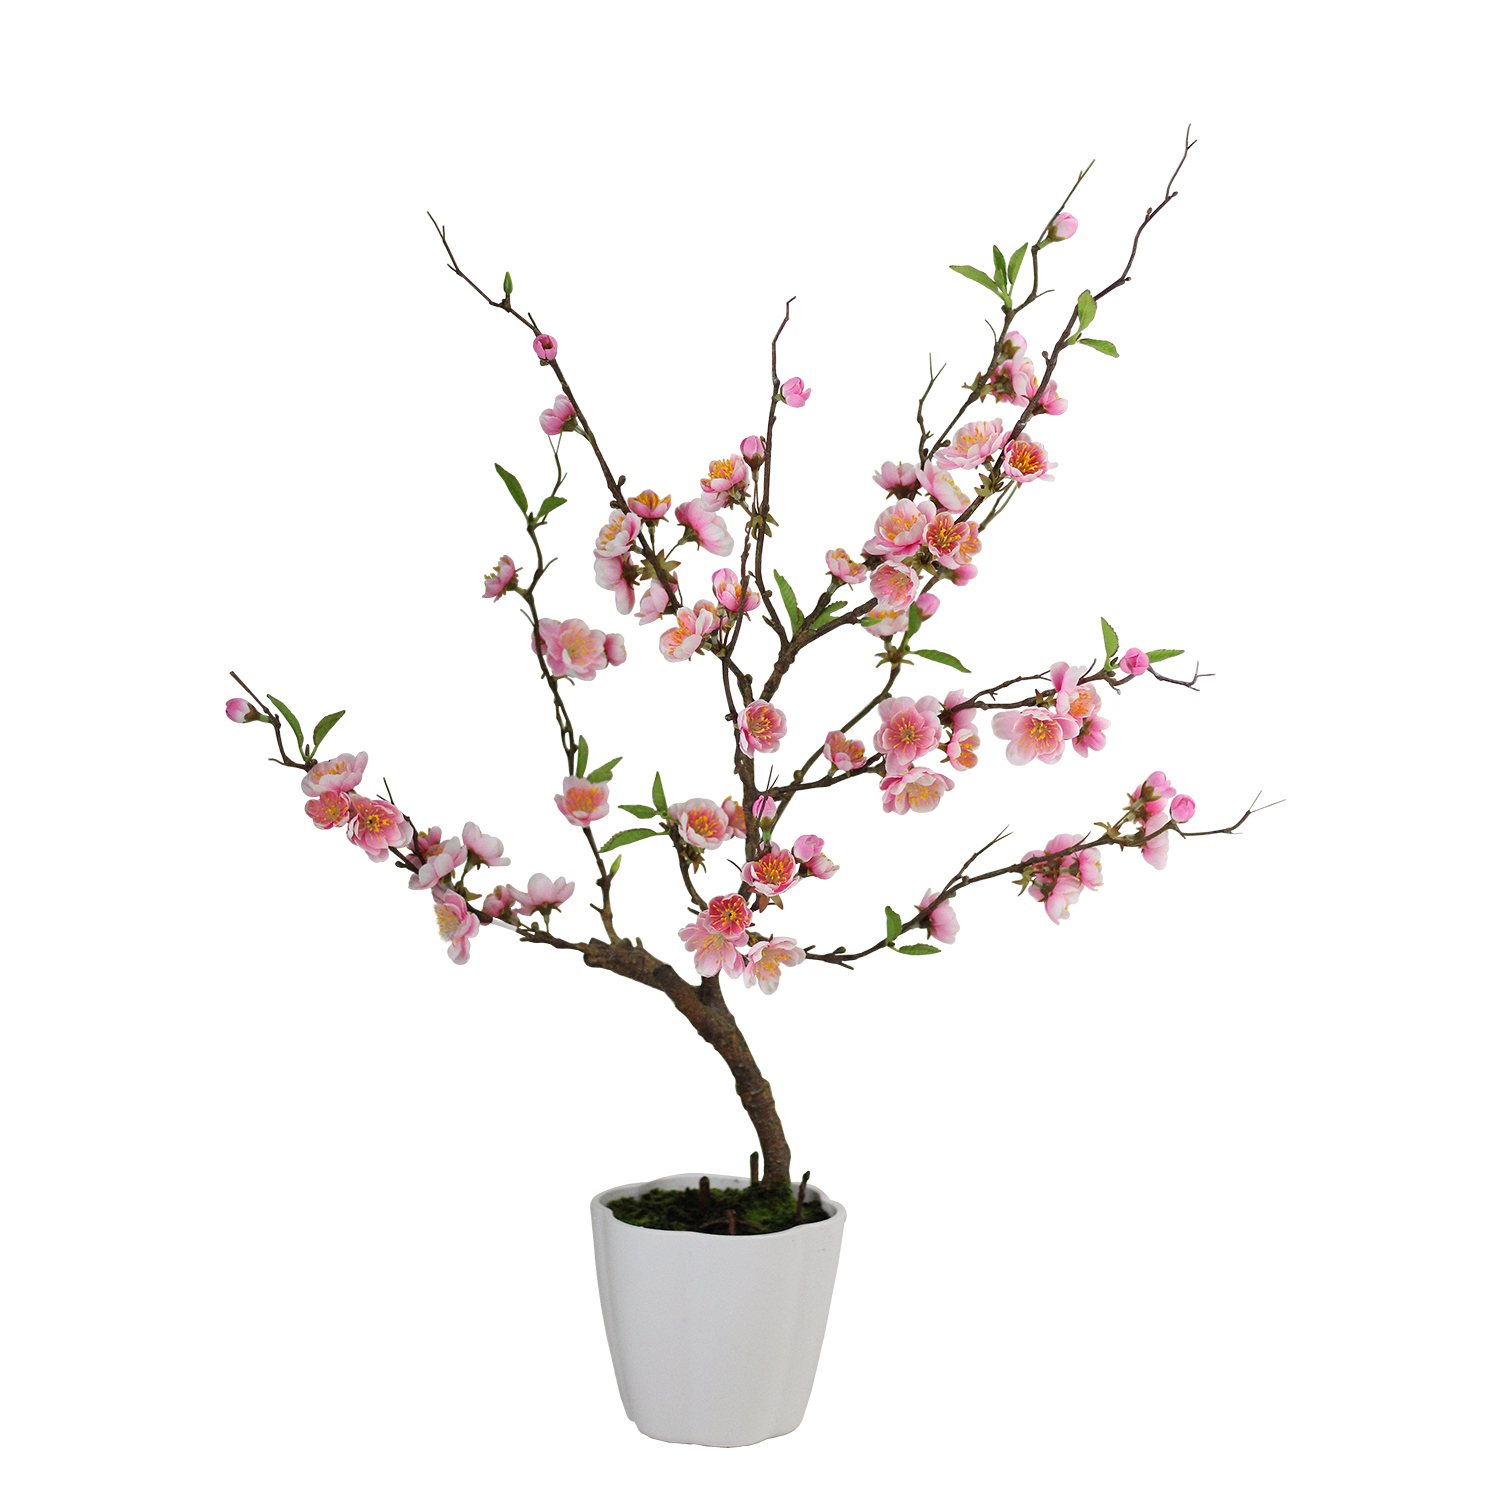 1500x1500 Pink Artificial Ming Cherry Blossom Tree In Pot